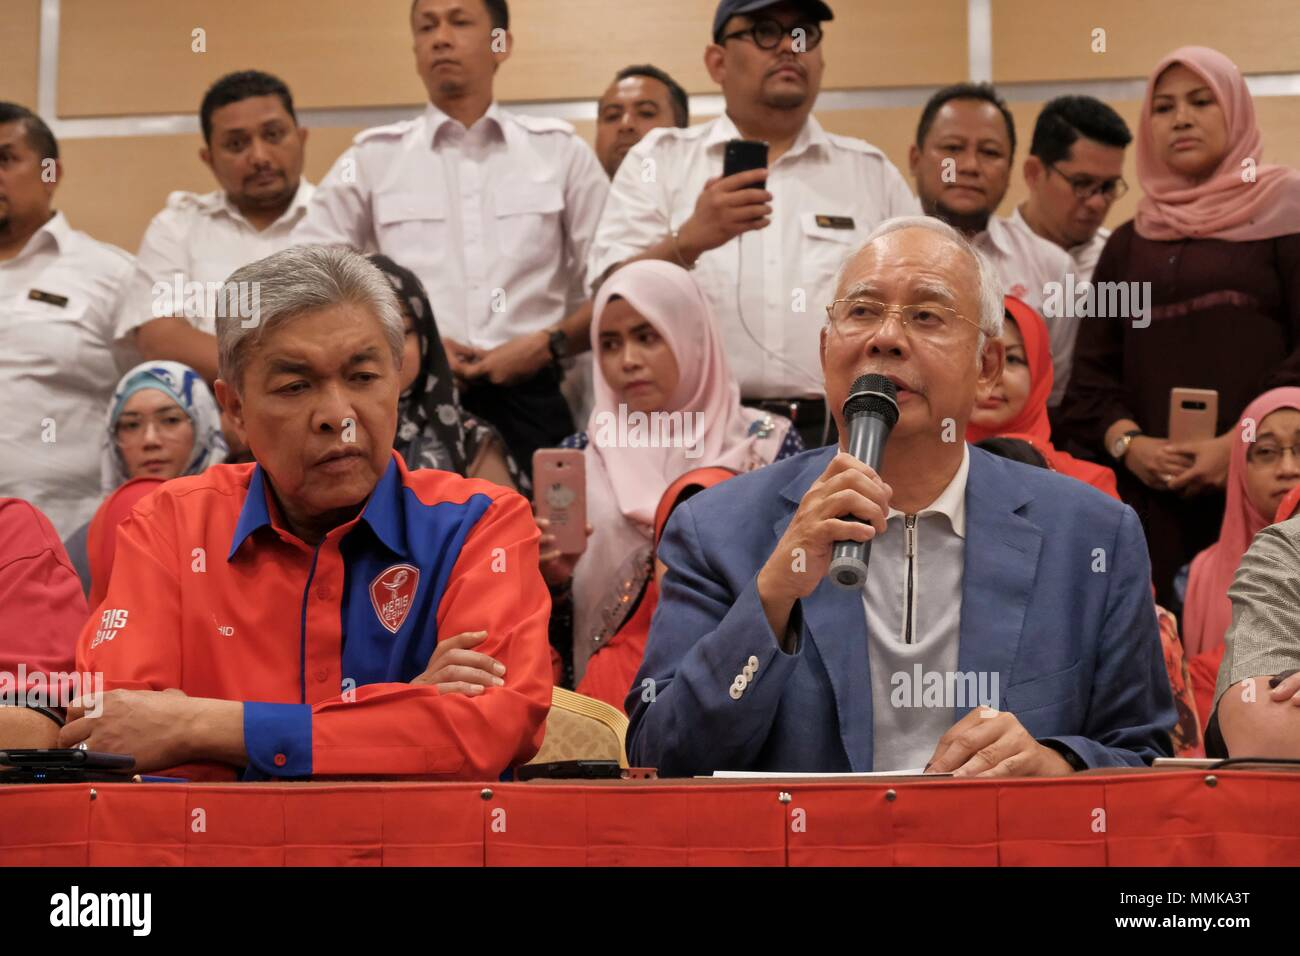 Kuala Lumpur 12th May 2018 Former Malaysian Prime Minster Najib Razak R Front Attends A Press Conference In Kuala Lumpur Malaysia May 12 2018 Najib Razak Said Saturday That He Is Stepping